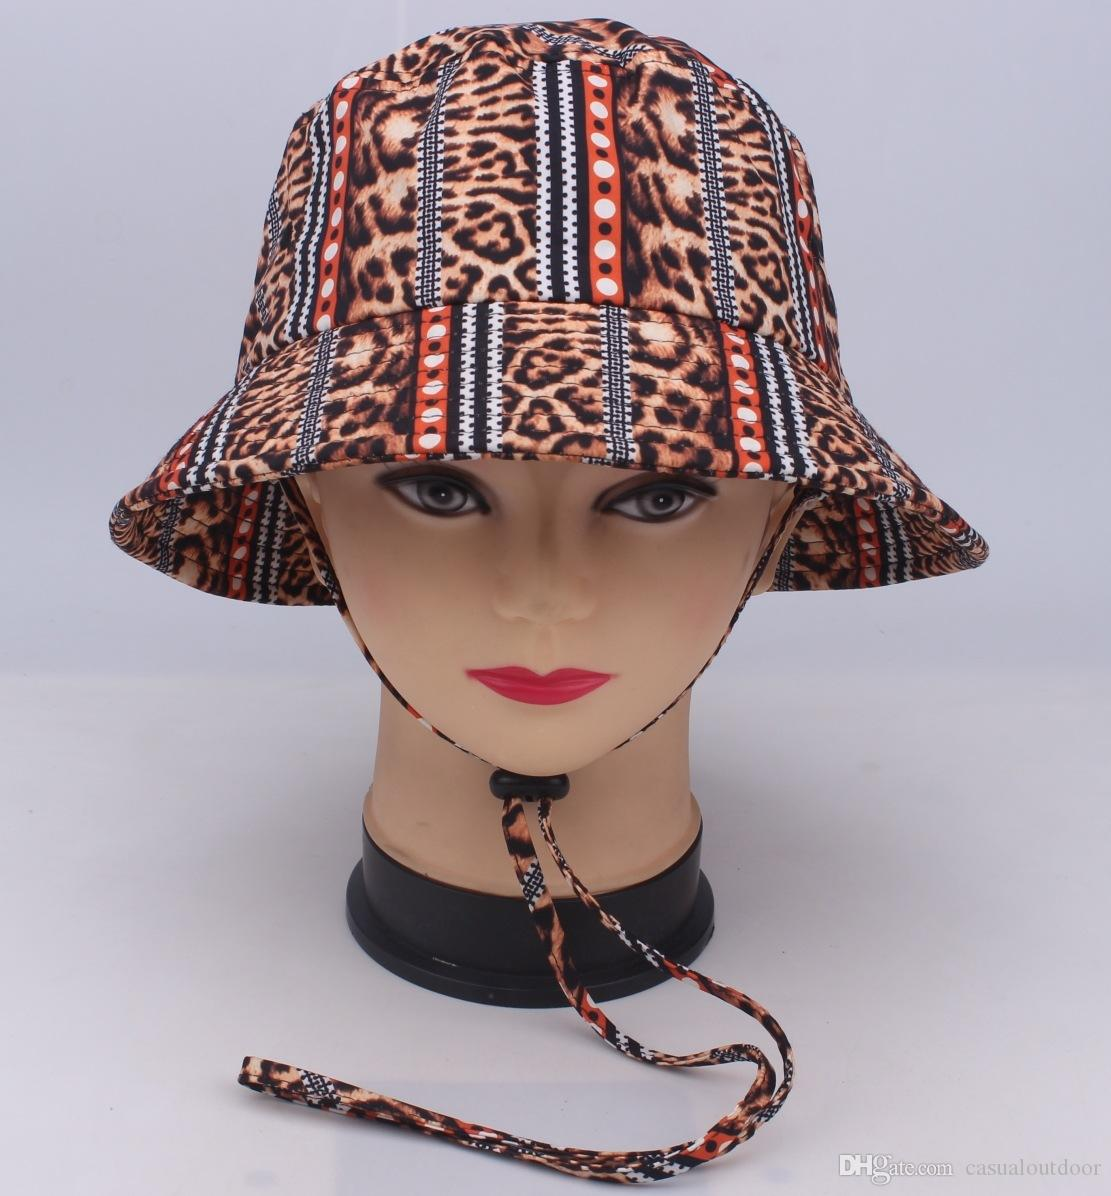 abef4853f57 Wholesale 2018 New Outdoor Men   Women Bob Fishing Cap Planet Fashion  Floral Bucket Hat With String Sun Protection Sun Hat Riding Beach Hat Mens Hat  Styles ...